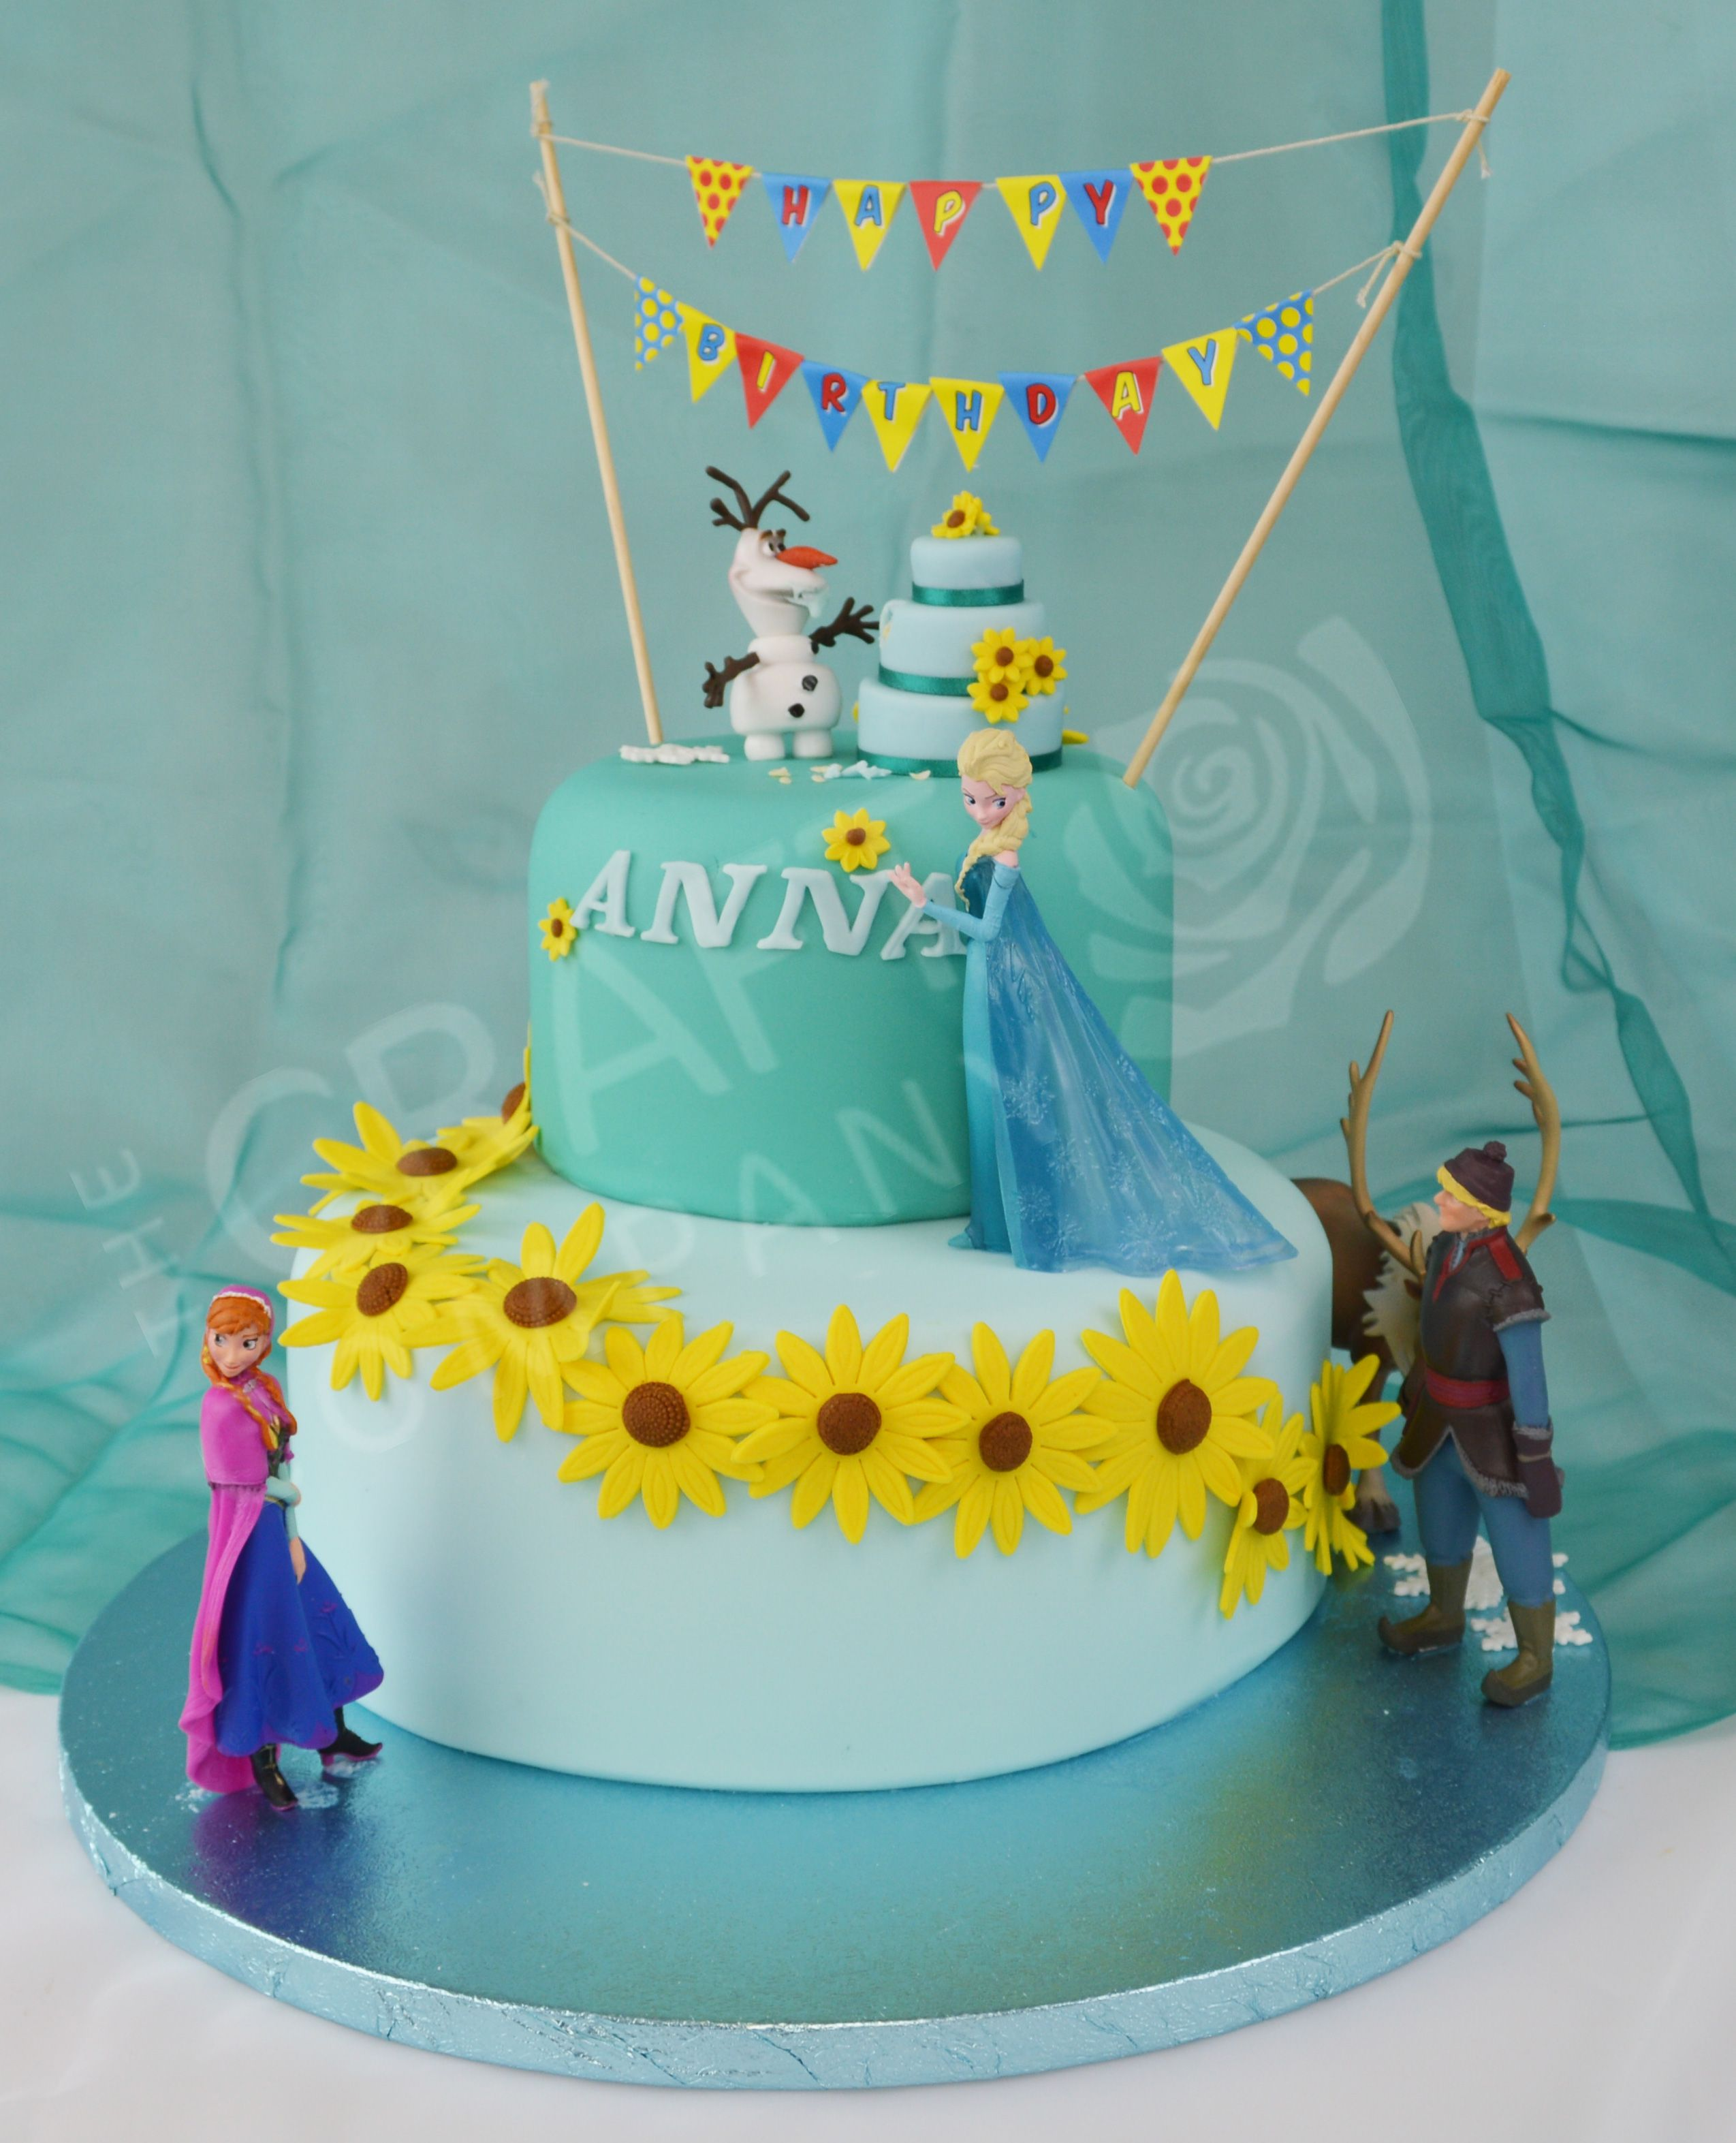 Disney Frozenfever Cake Made By The Craft Company To View